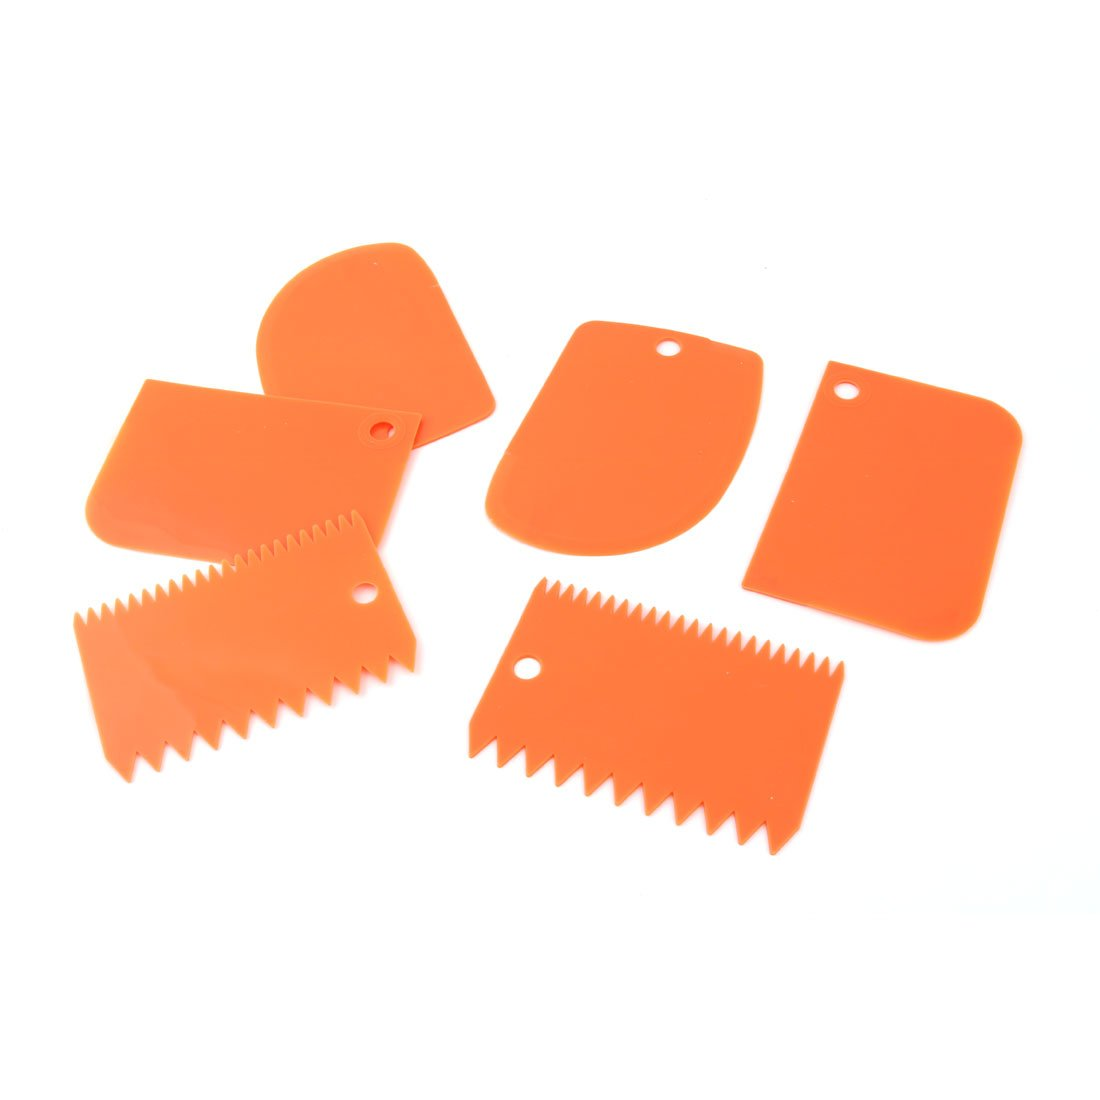 uxcell Plastic Home Heat Resistant Cake Butter DIY Baking Spatula Scraper 2 Sets Orange